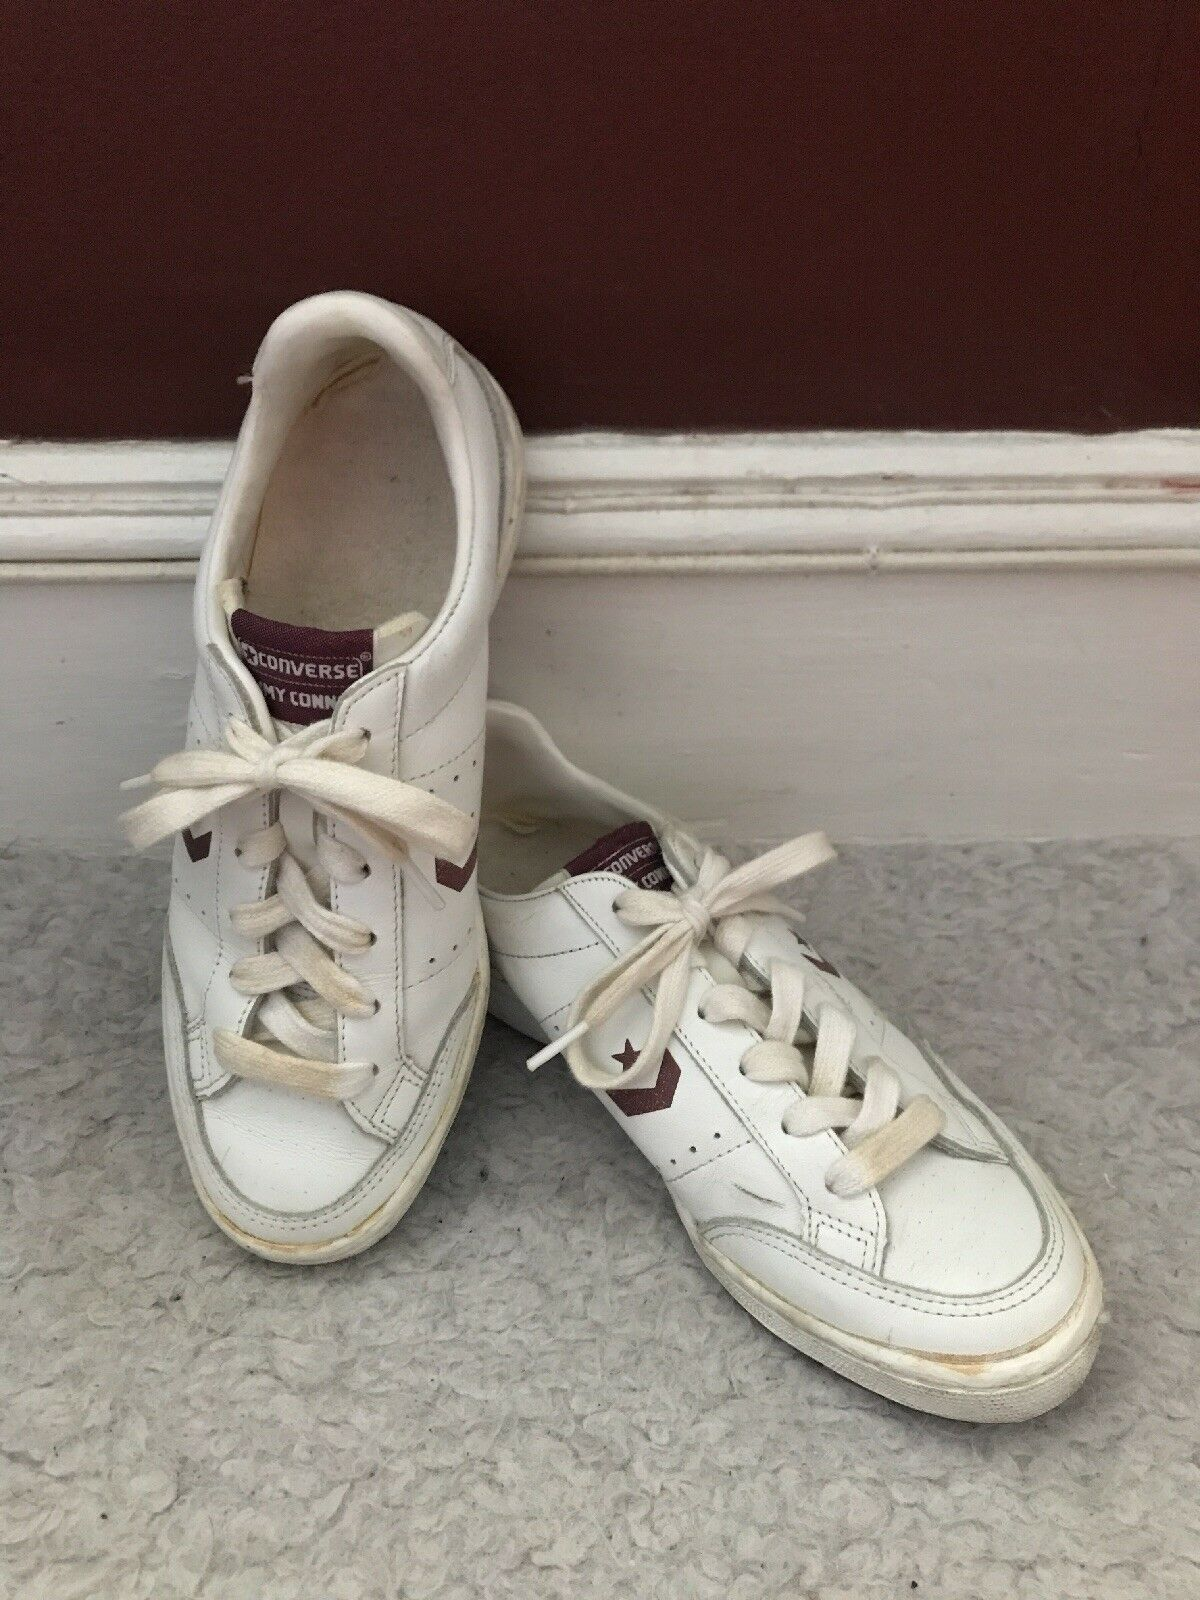 Vintage Jimmy Connors Converse All Star 7M 1980's Niedrig Top Größe 7M Star WEISS/Burgundy a80ad3